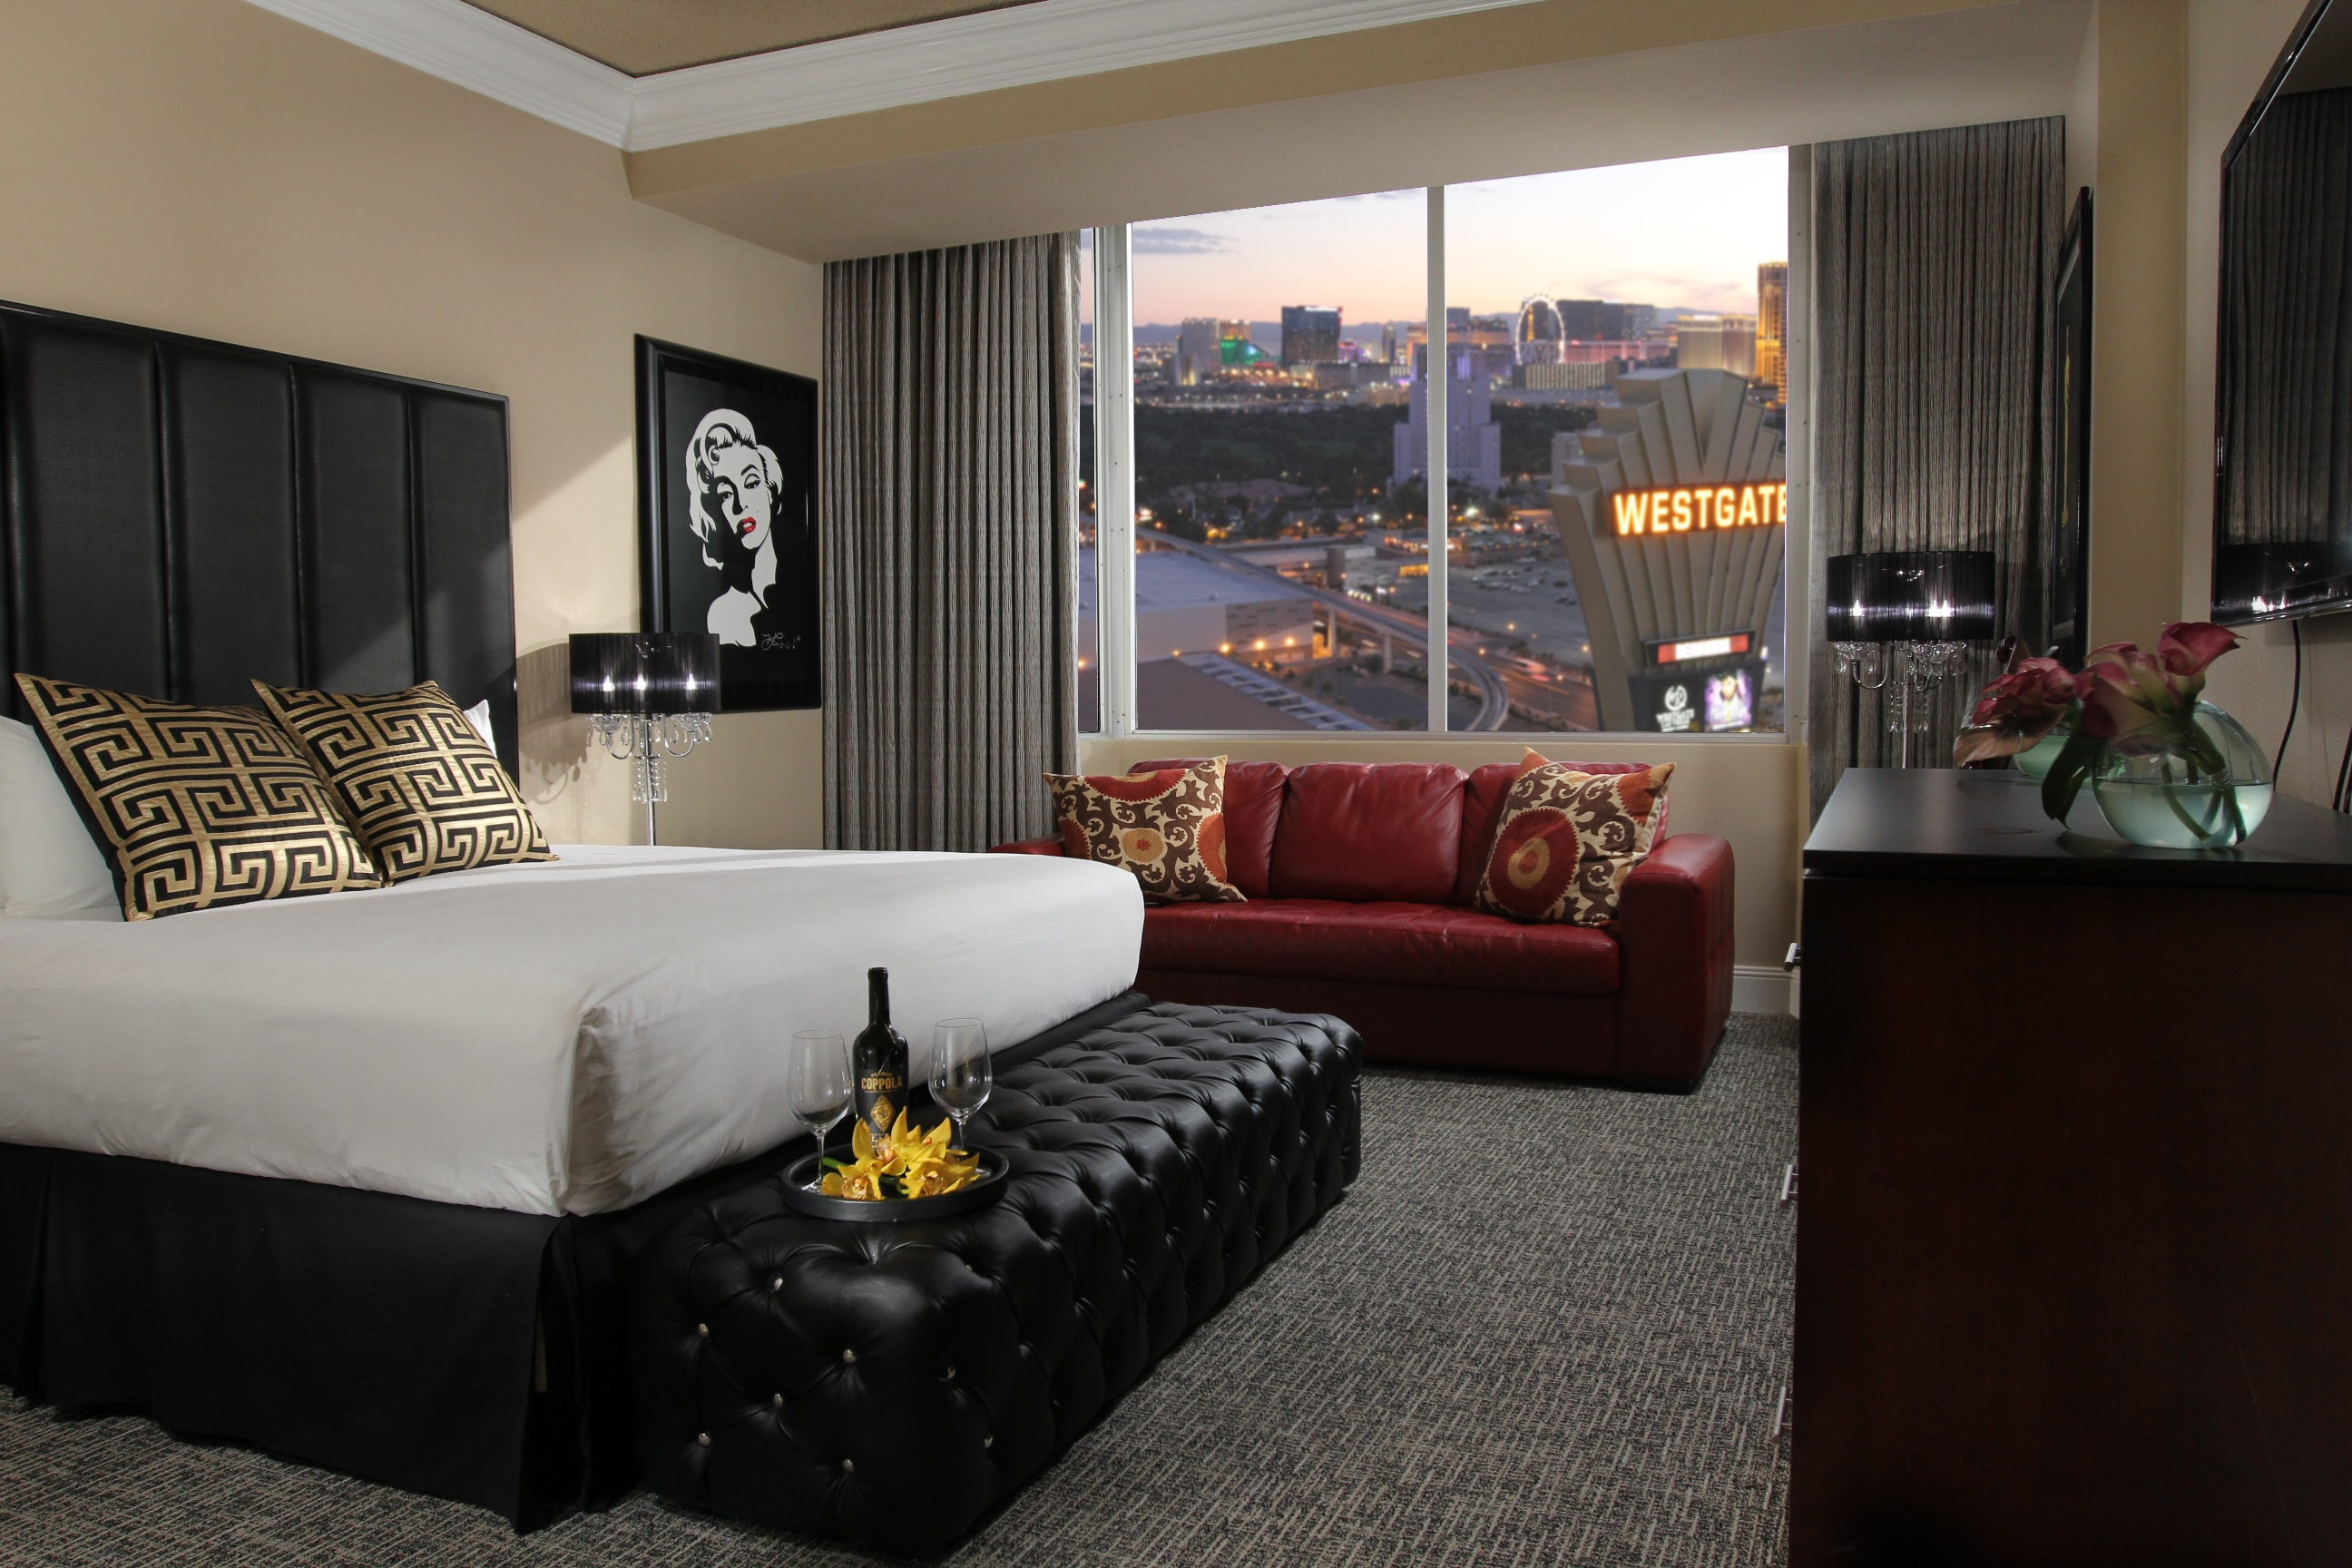 Westgate-Signature-Room-King